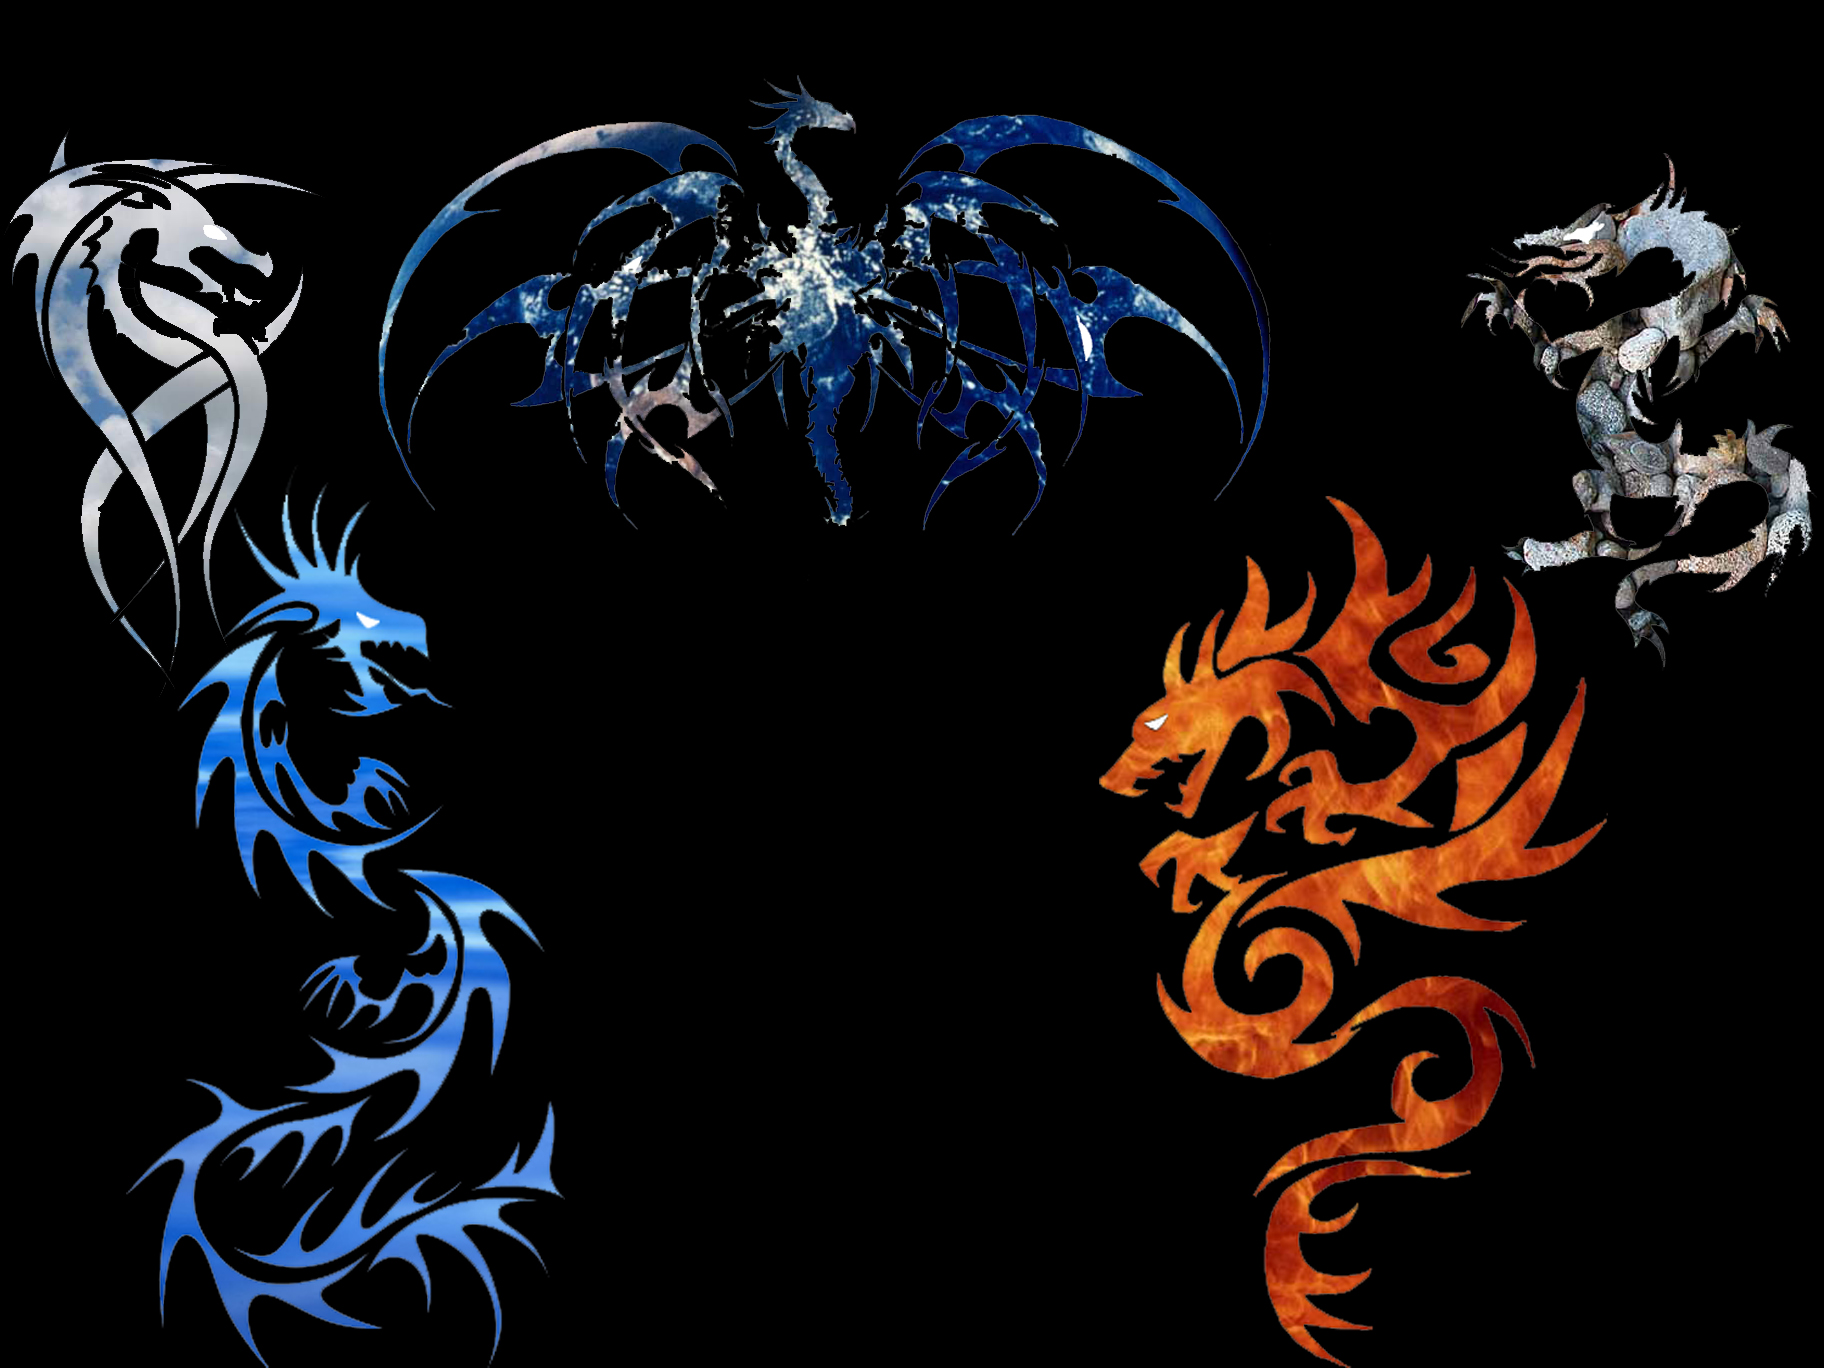 Wallpapers de dragones